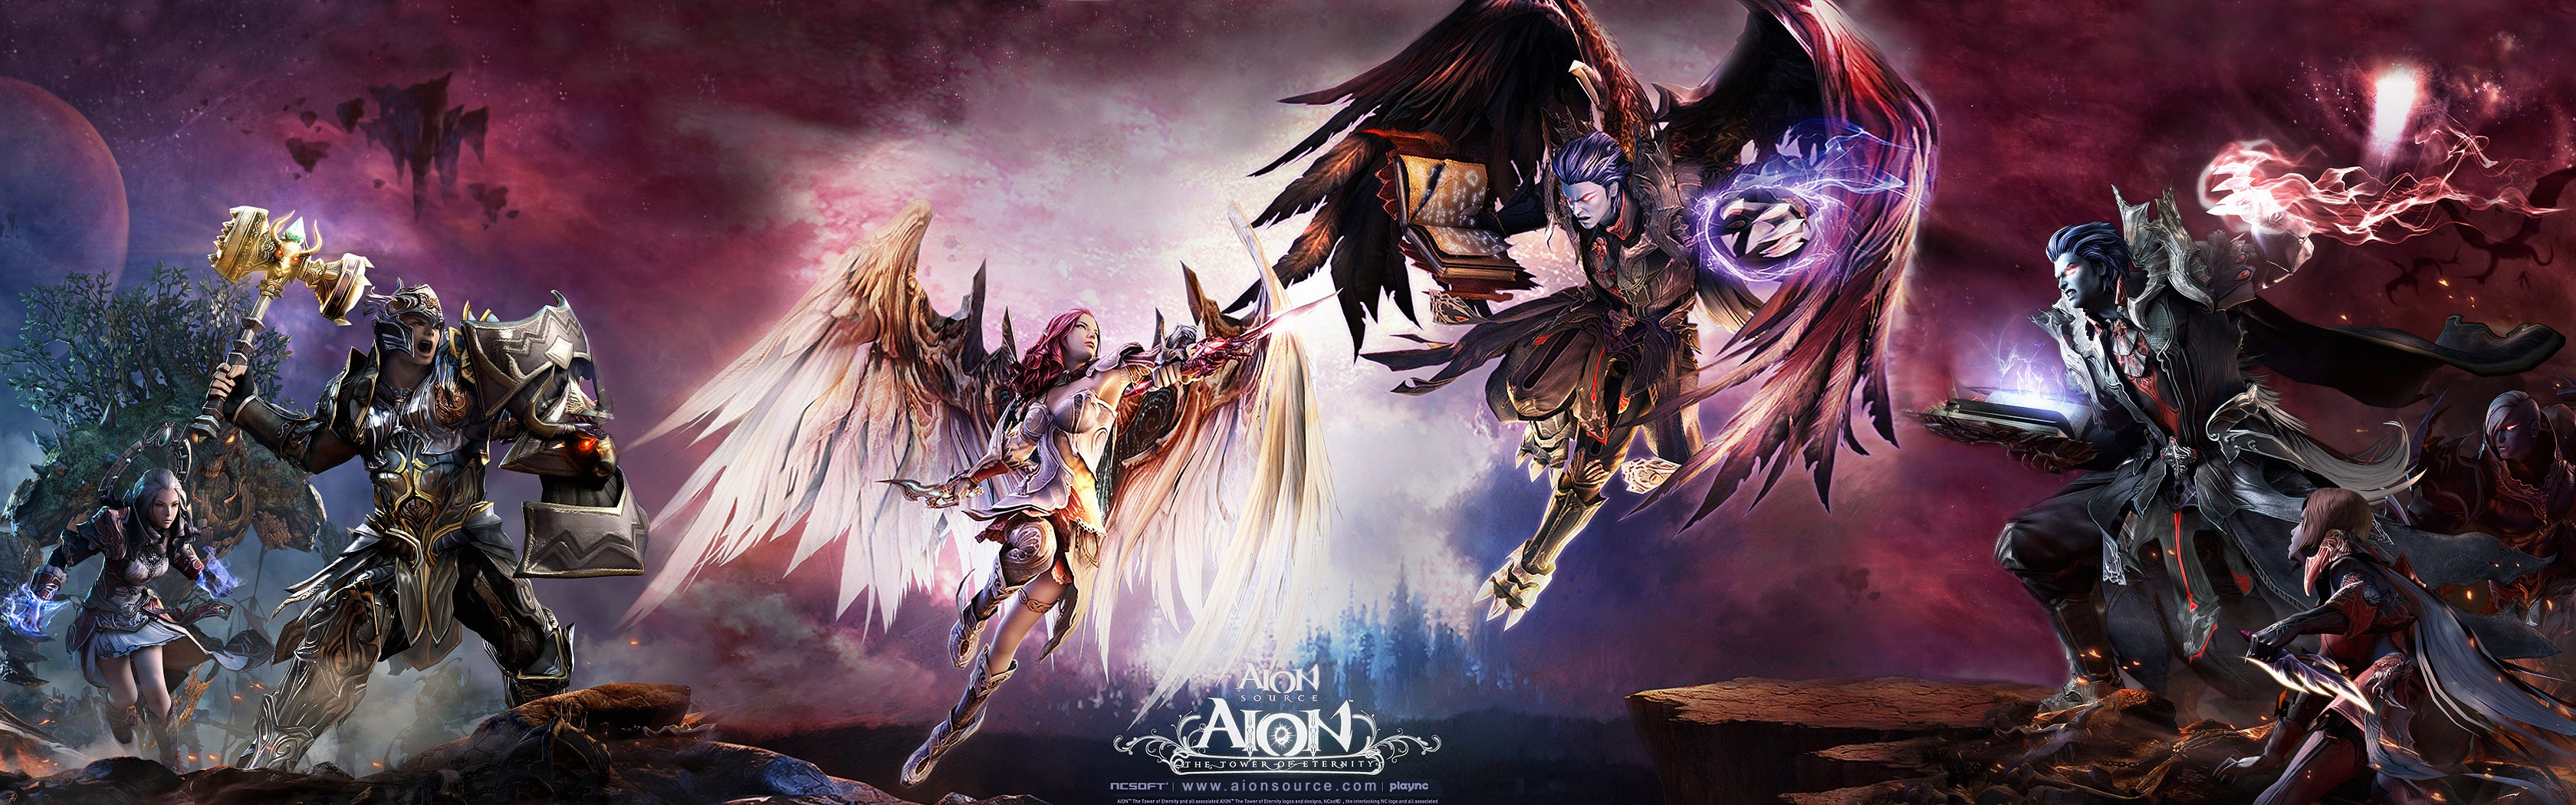 Tower Dual Screen Aion Wallpaper